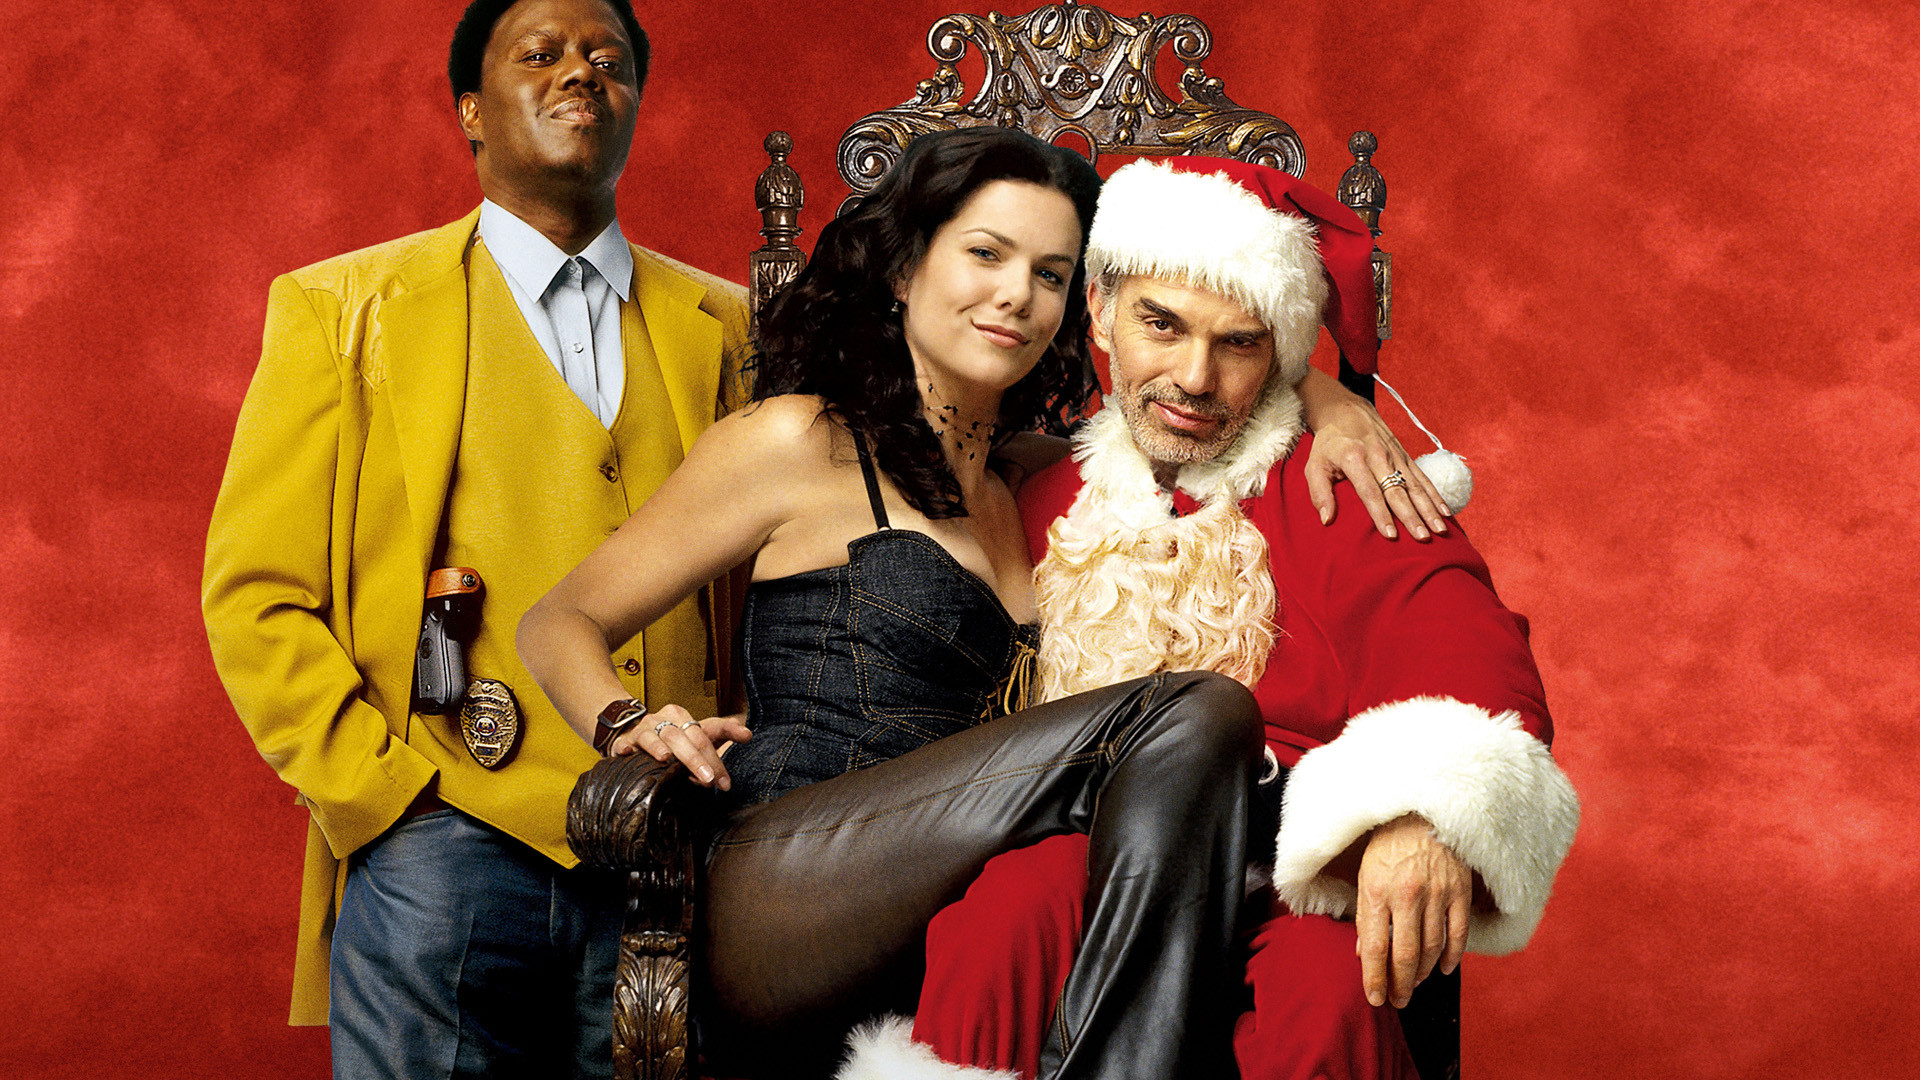 Res: 1920x1080, Bad Santa 2 Movies Images Photos Pictures Backgrounds